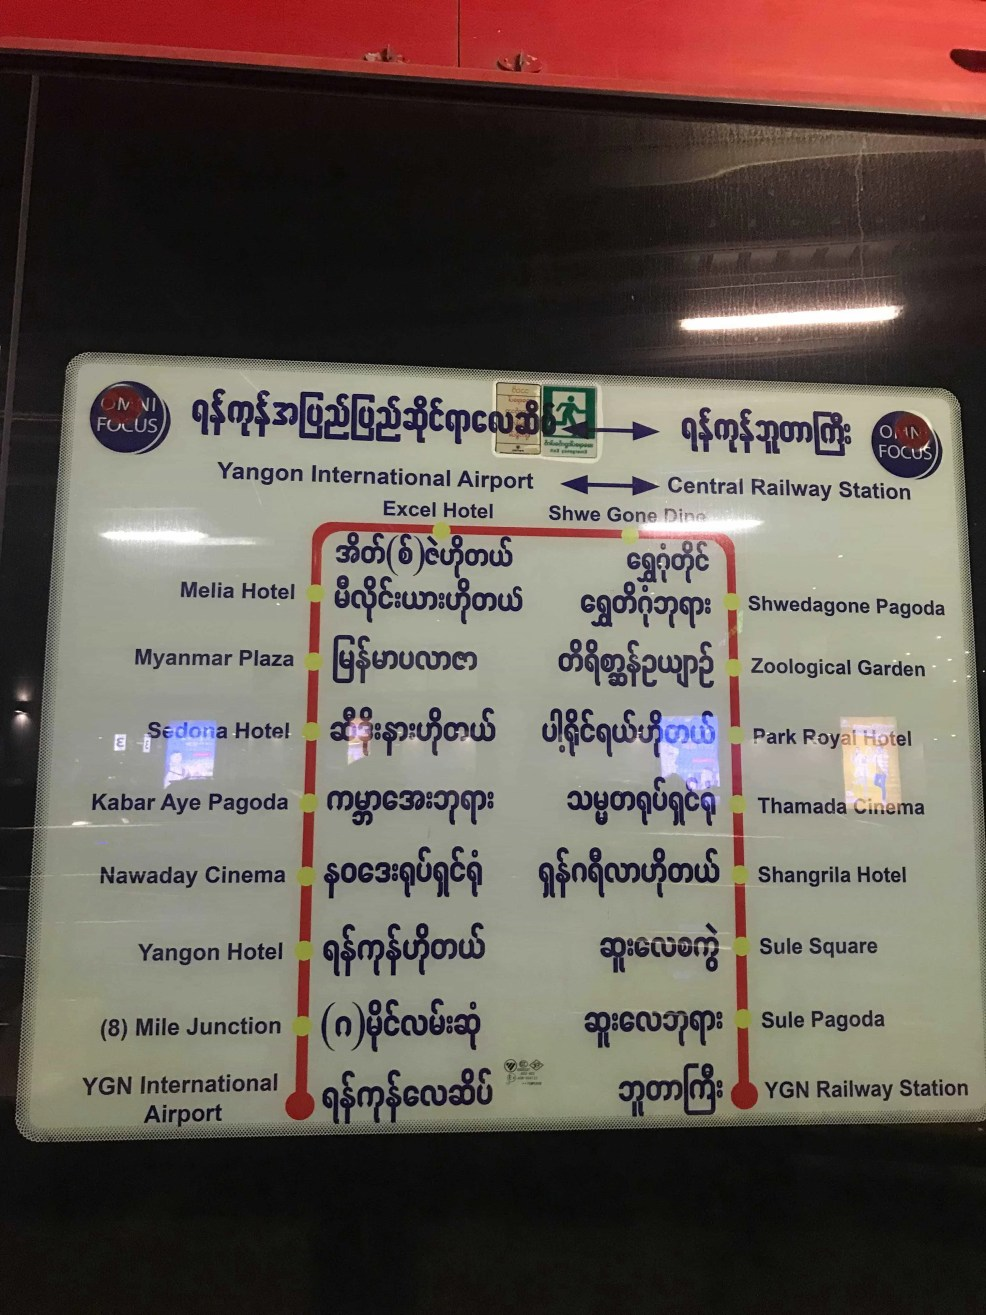 how to get to yangon from Yangon international airport, how to get to Yangon from the airport, how to get to Yangon